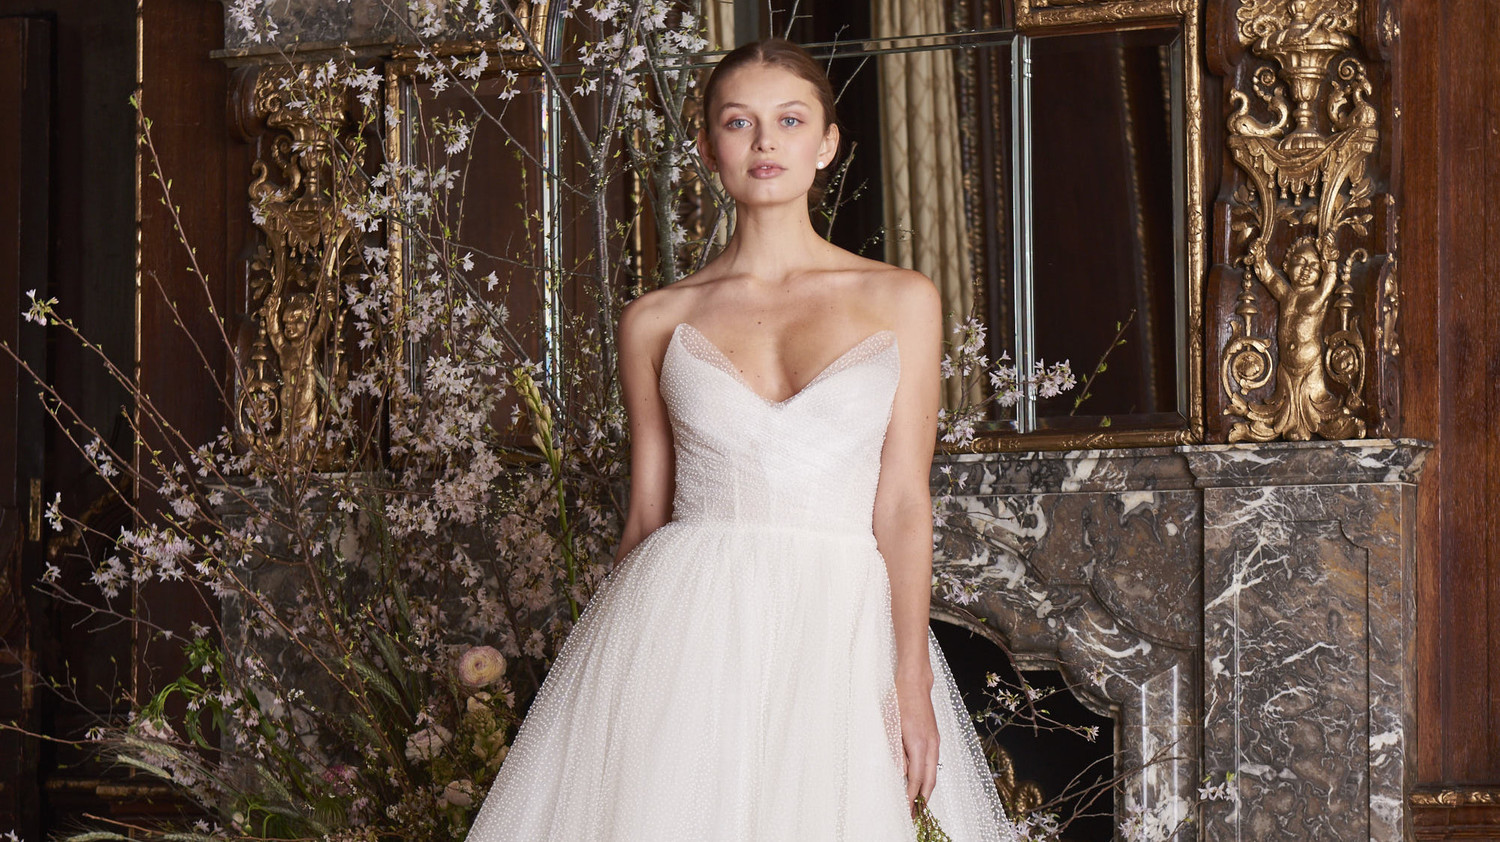 Monique Lhuillier Spring 2019 Wedding Dress Collection